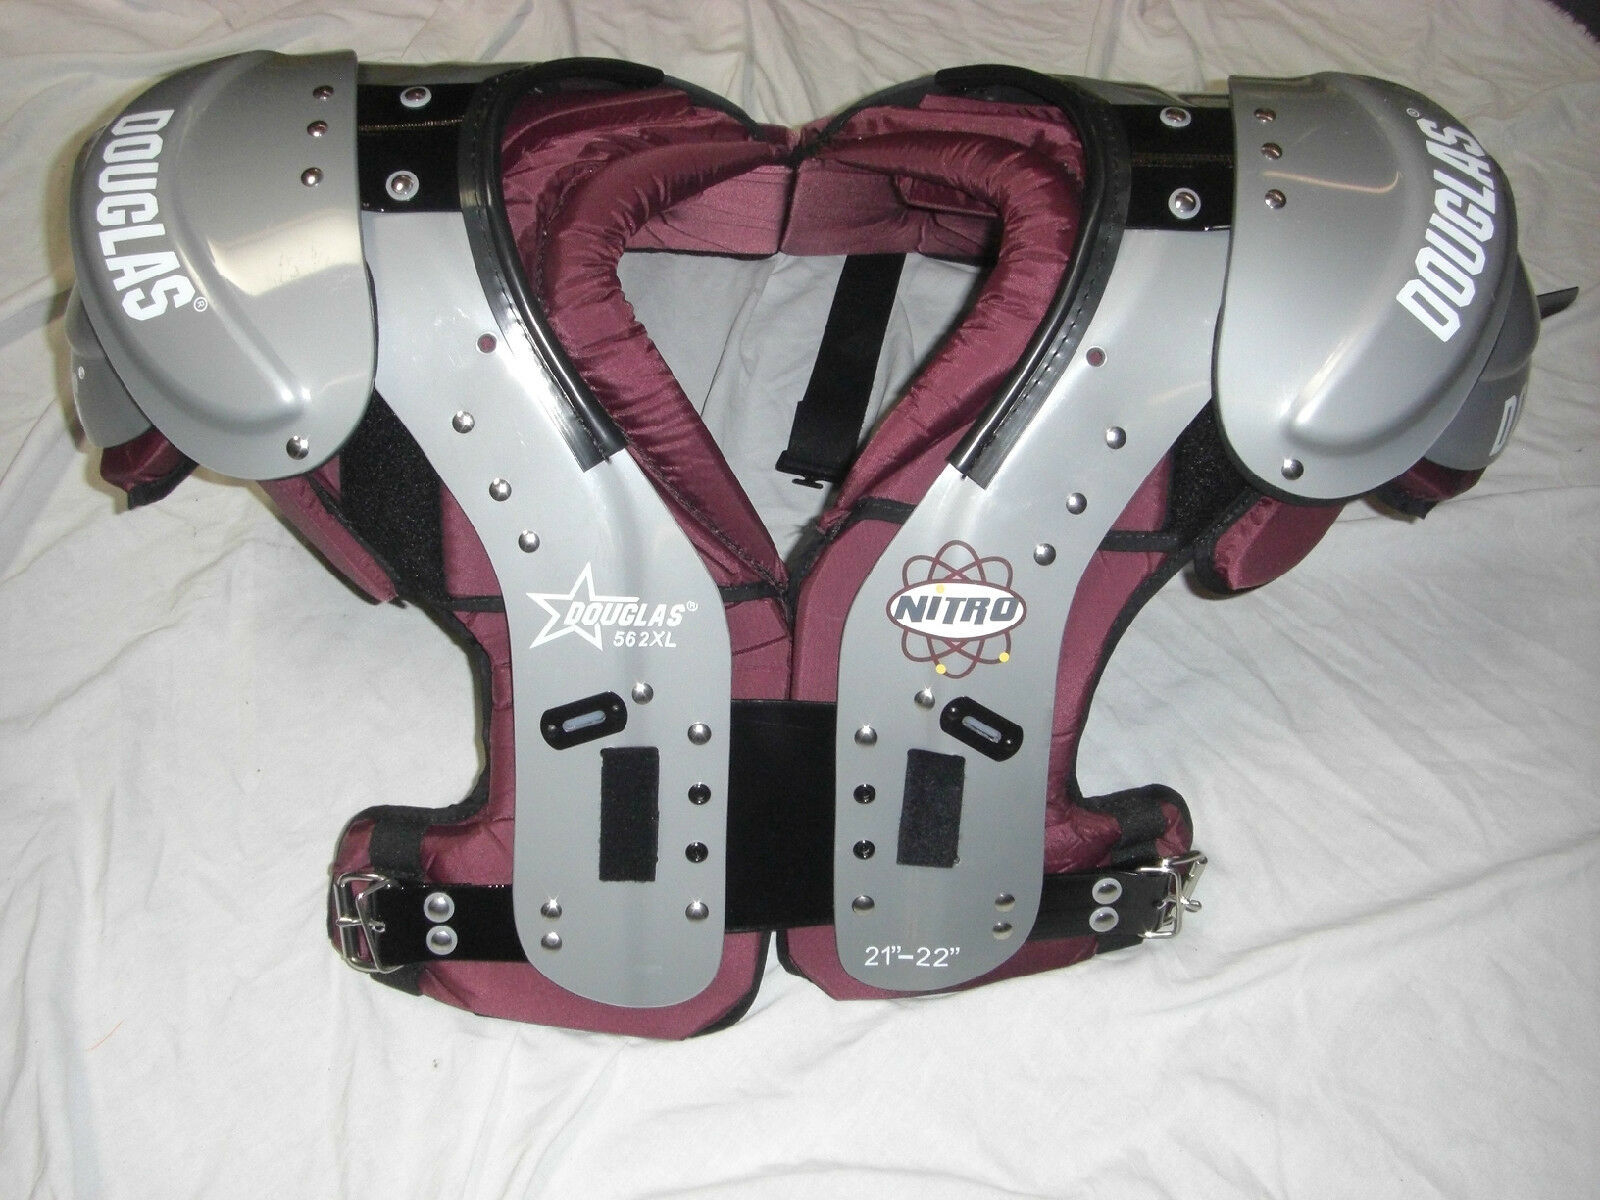 DOUGLAS NP 56 NITRO MULTI PURPOSE FOOTBALL SHOULDER PAD